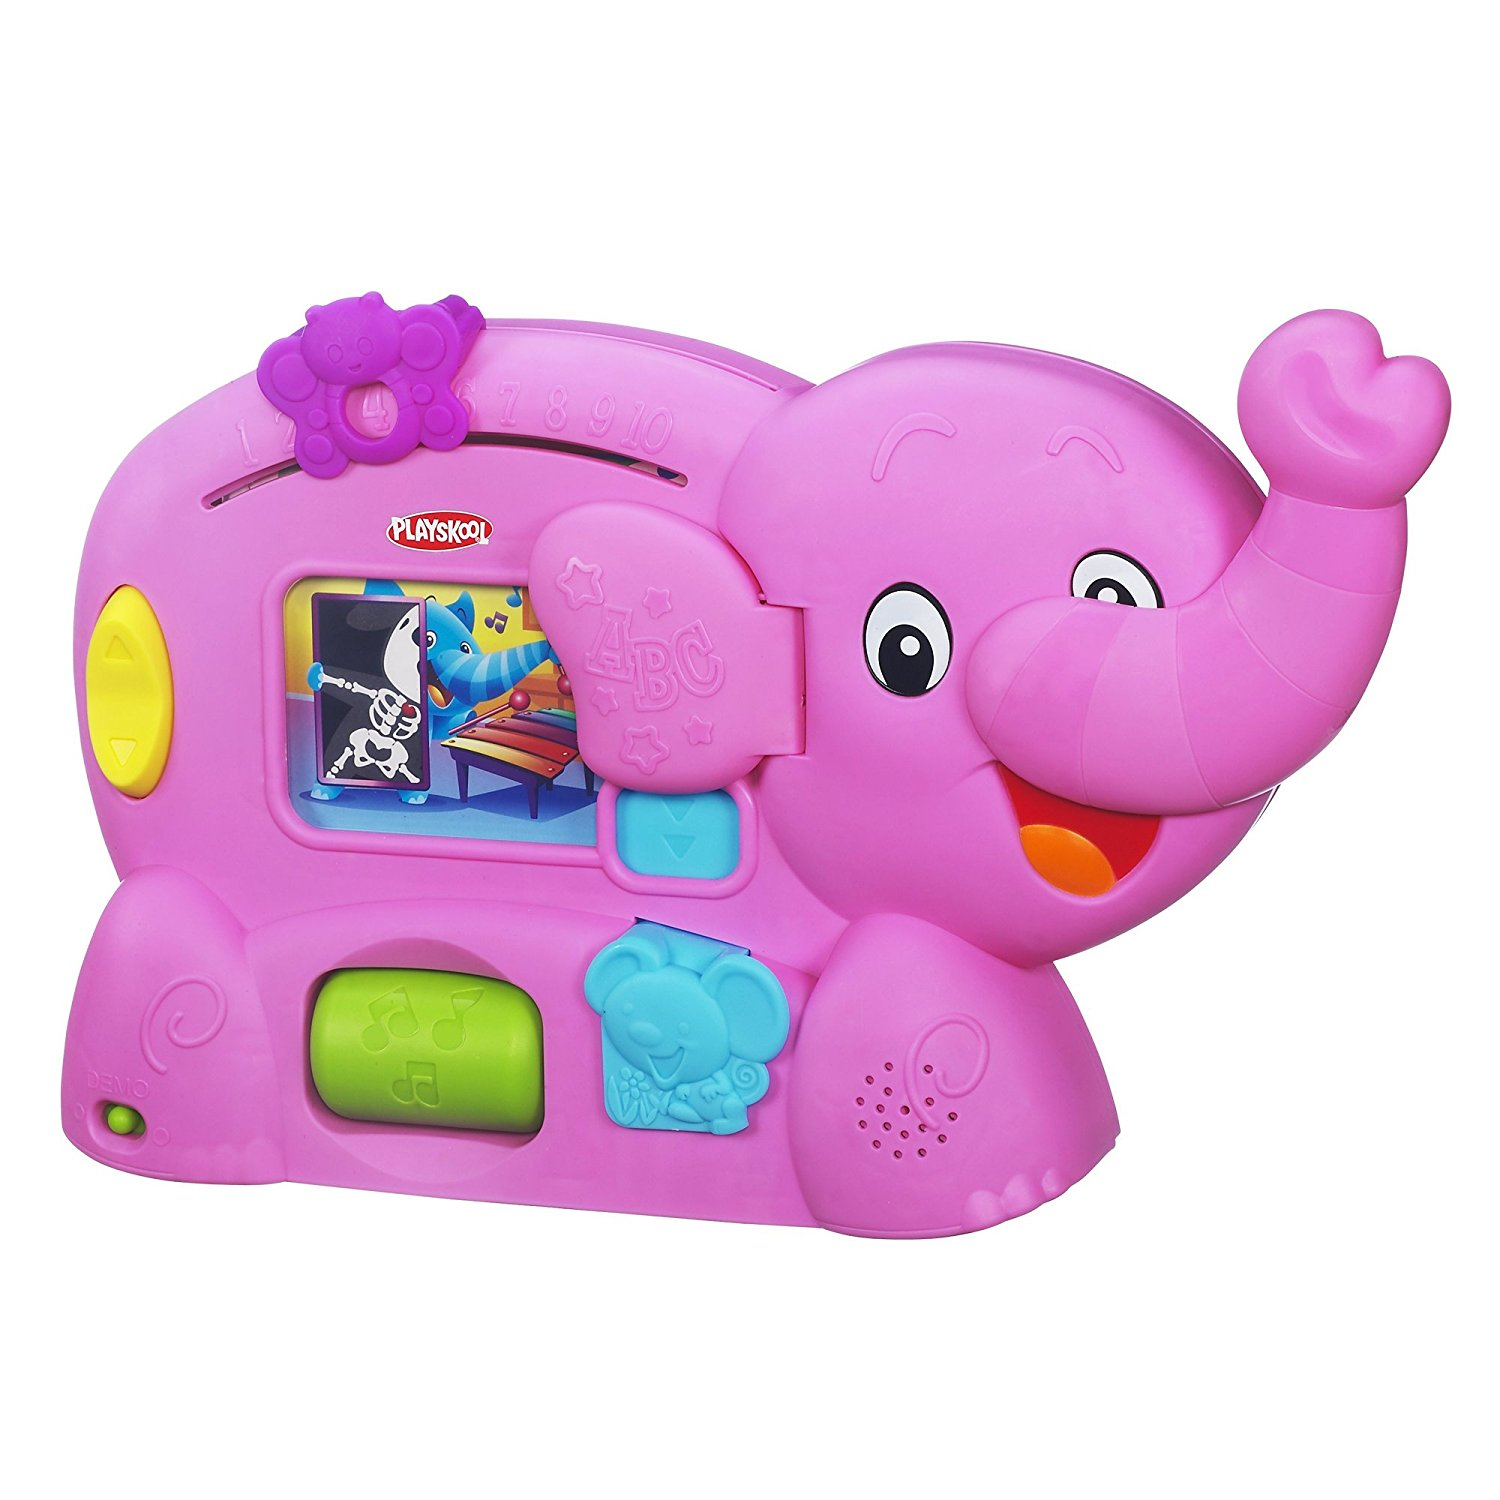 Learnimals ABC Adventure Pink Elephant Toy, High quality toys for children all ages By... by